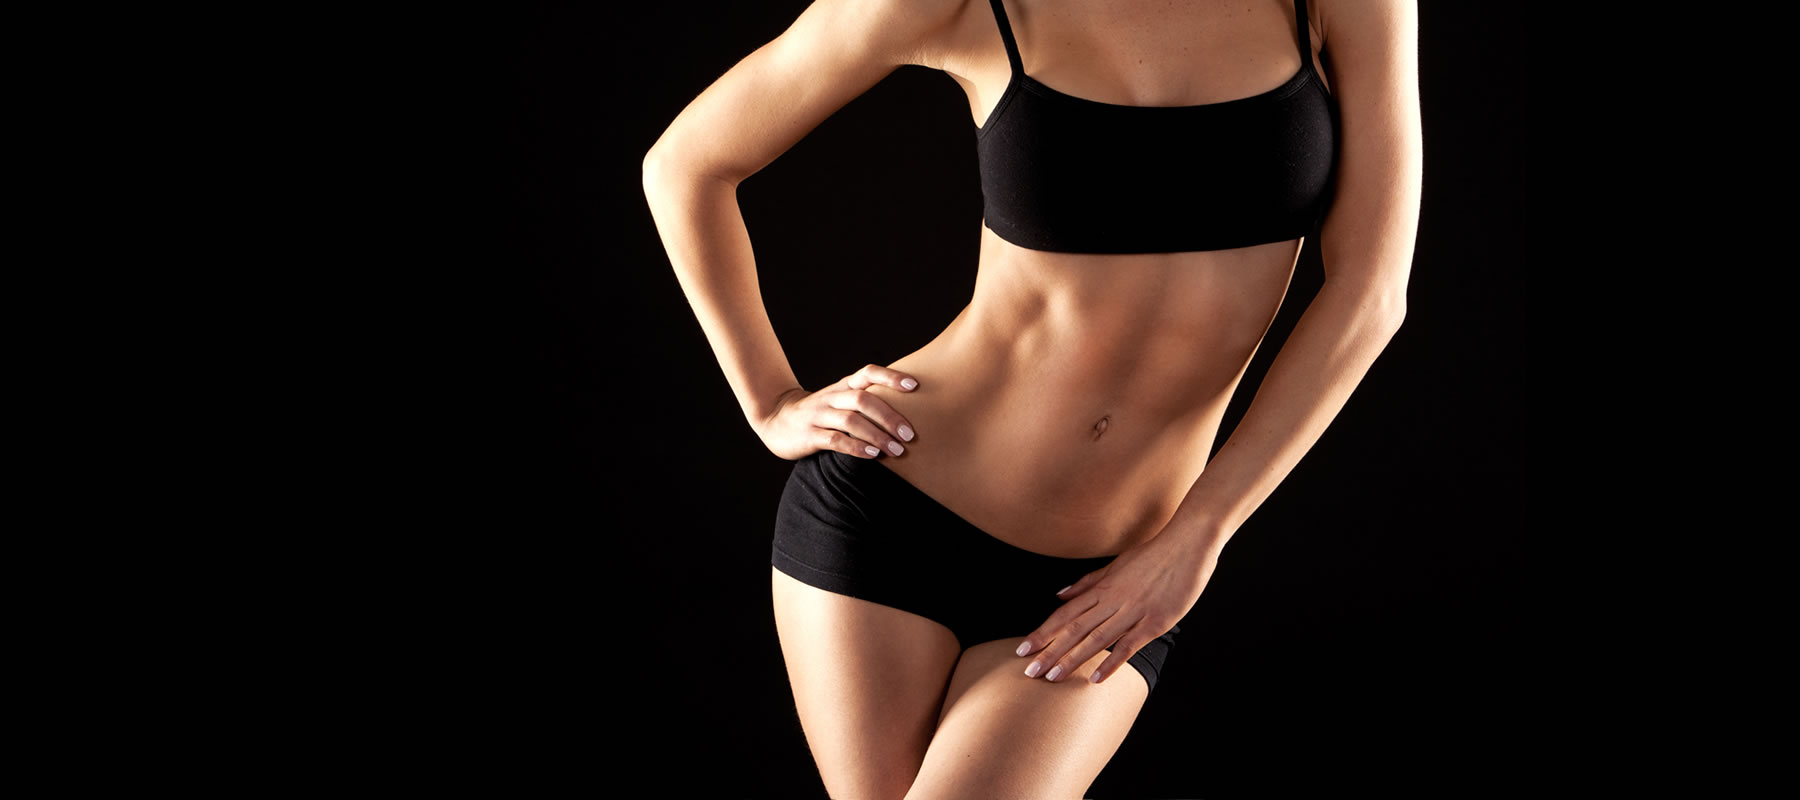 Hourglass Liposuction/Fat Grafting in Miami Florida